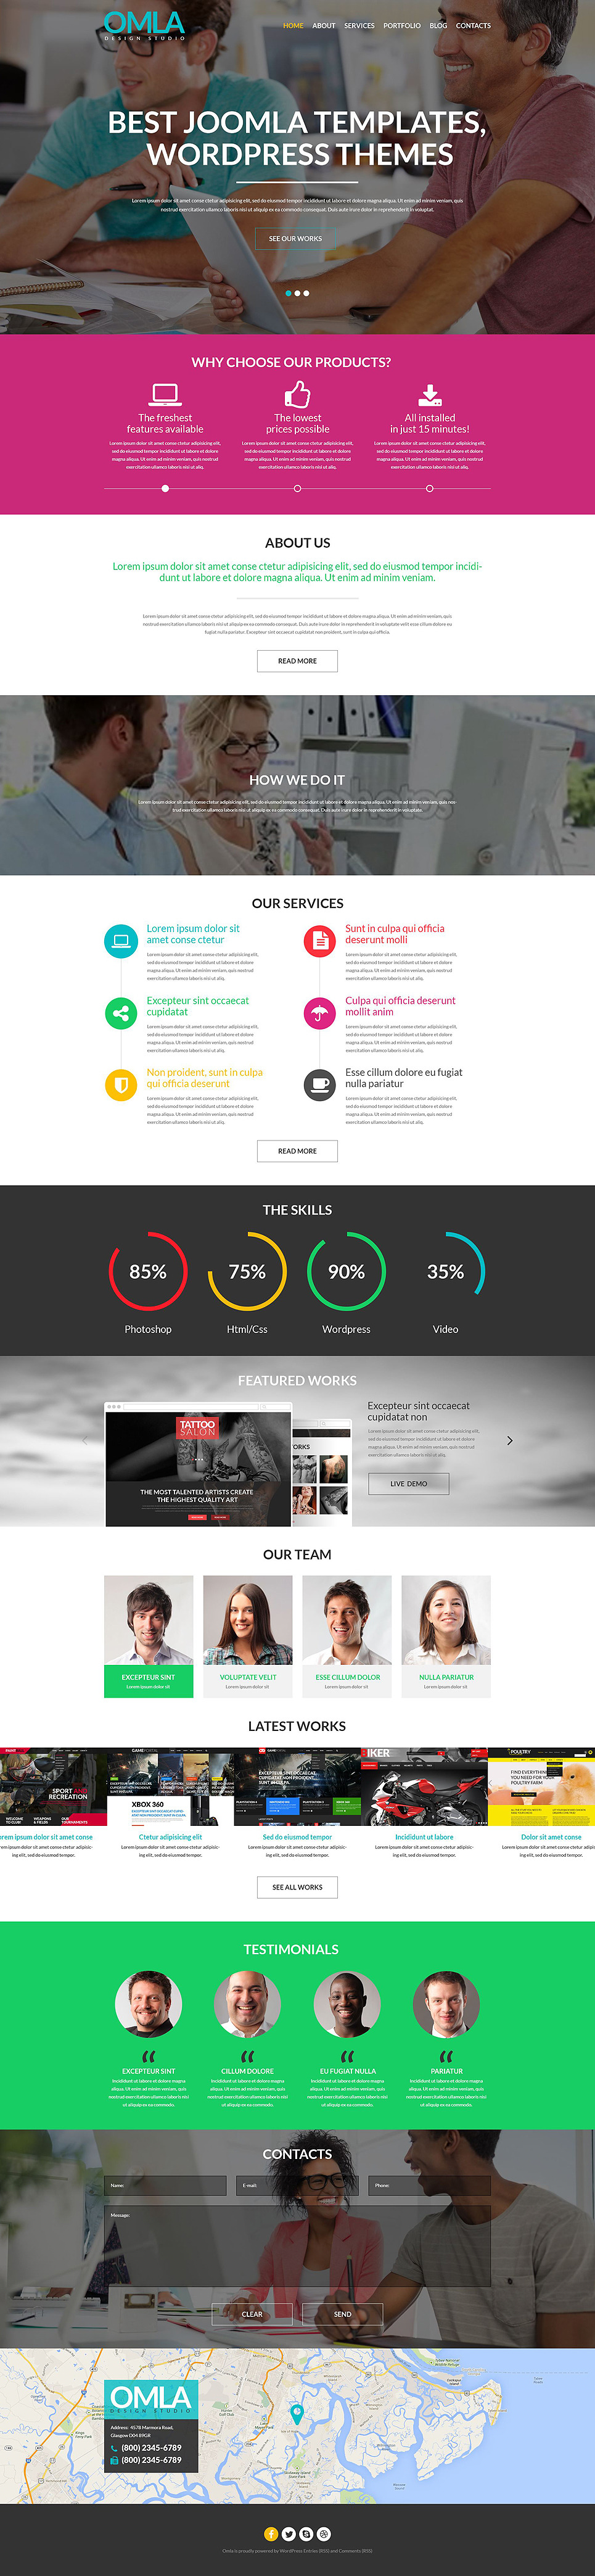 Web Design Agency WordPress Theme New Screenshots BIG